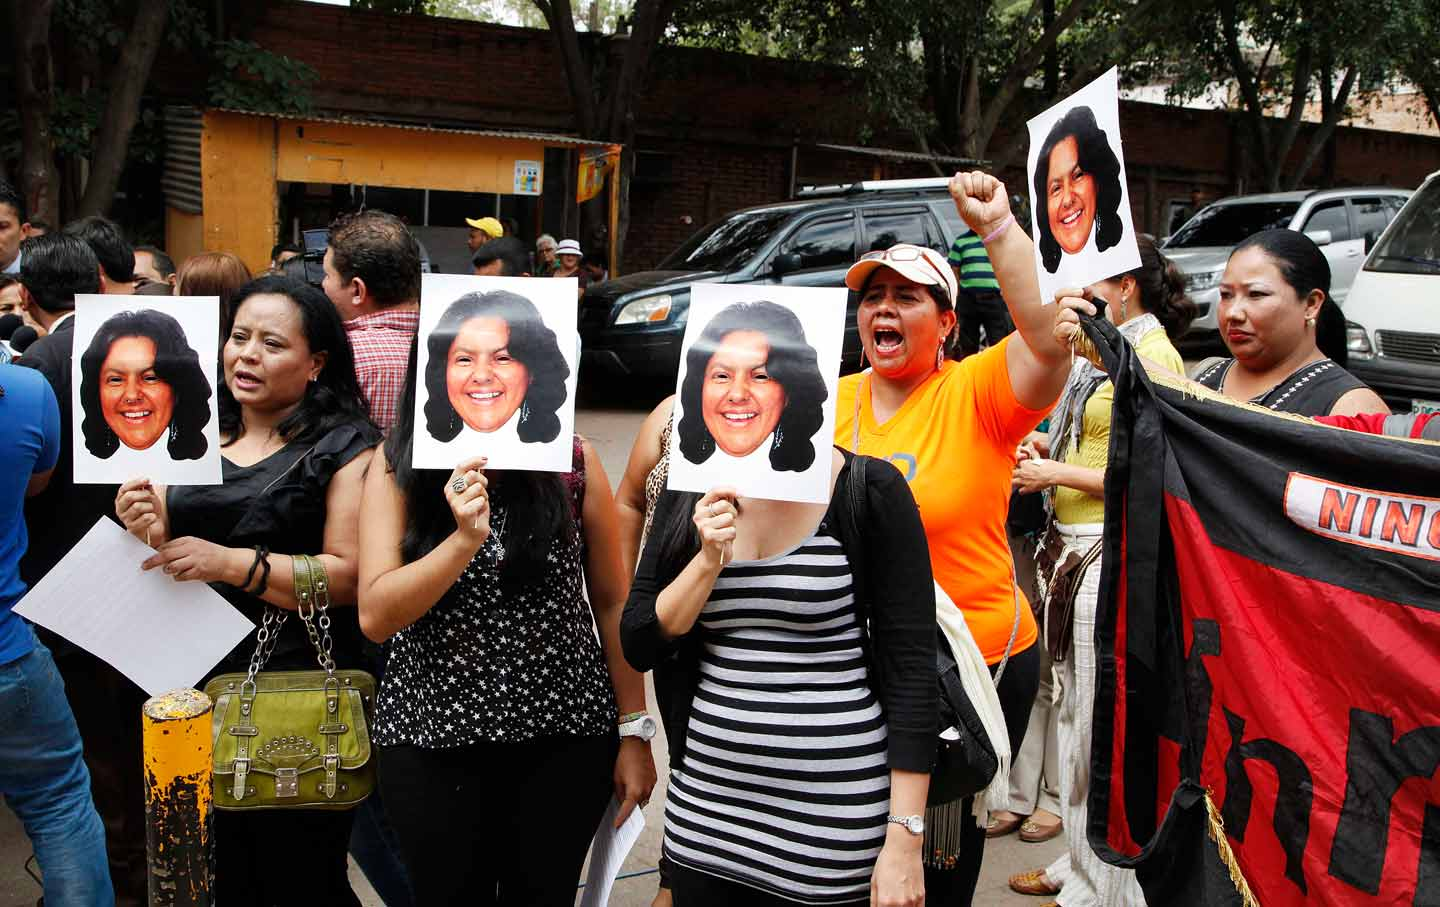 http://www.thenation.com/wp-content/uploads/2016/03/berta_caceres_mourners_ap_img.jpg